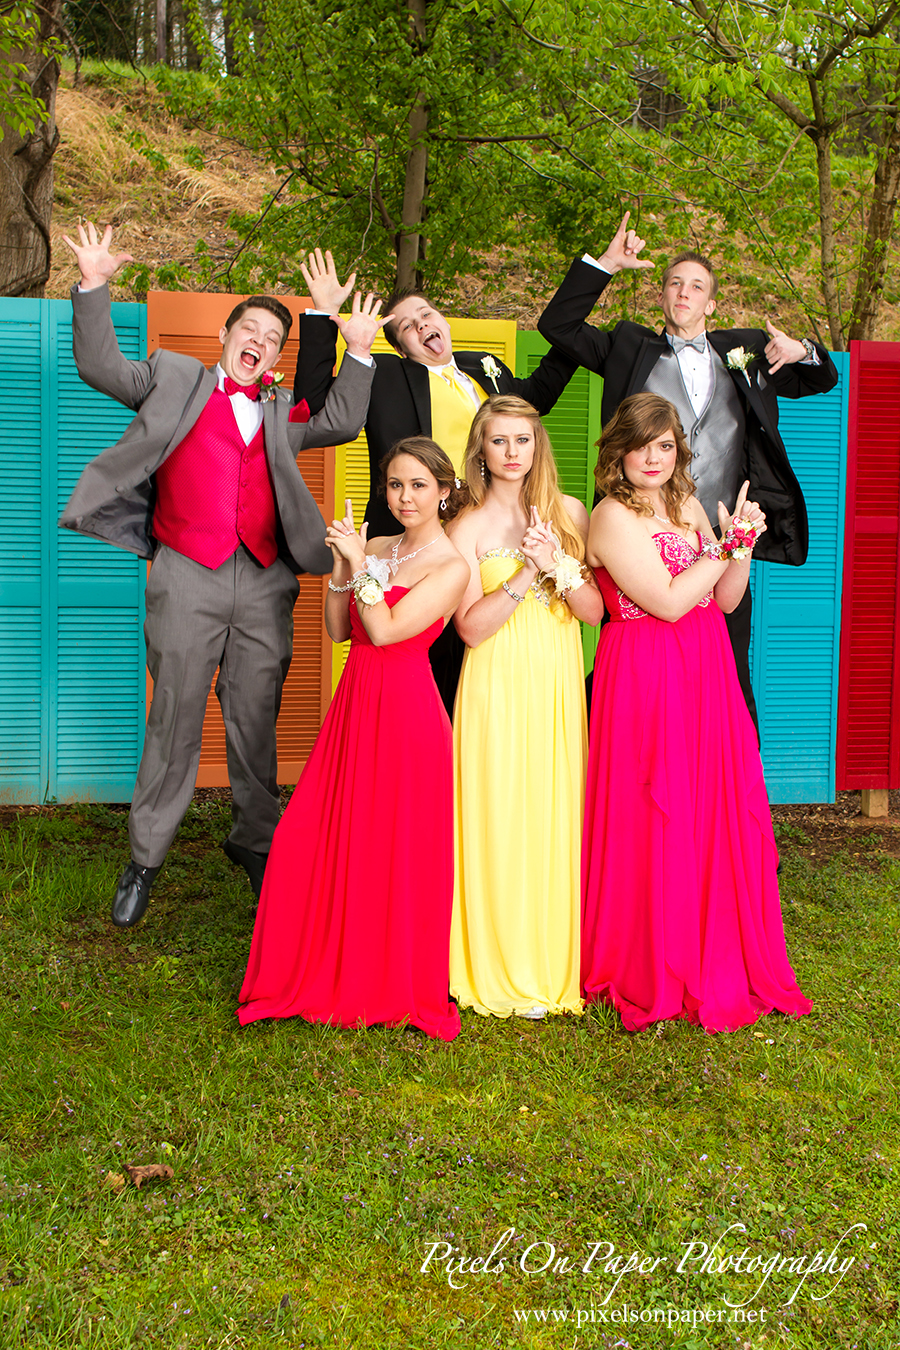 pixels on paper photography wilkesboro nc prom outdoor portrait photographers photo